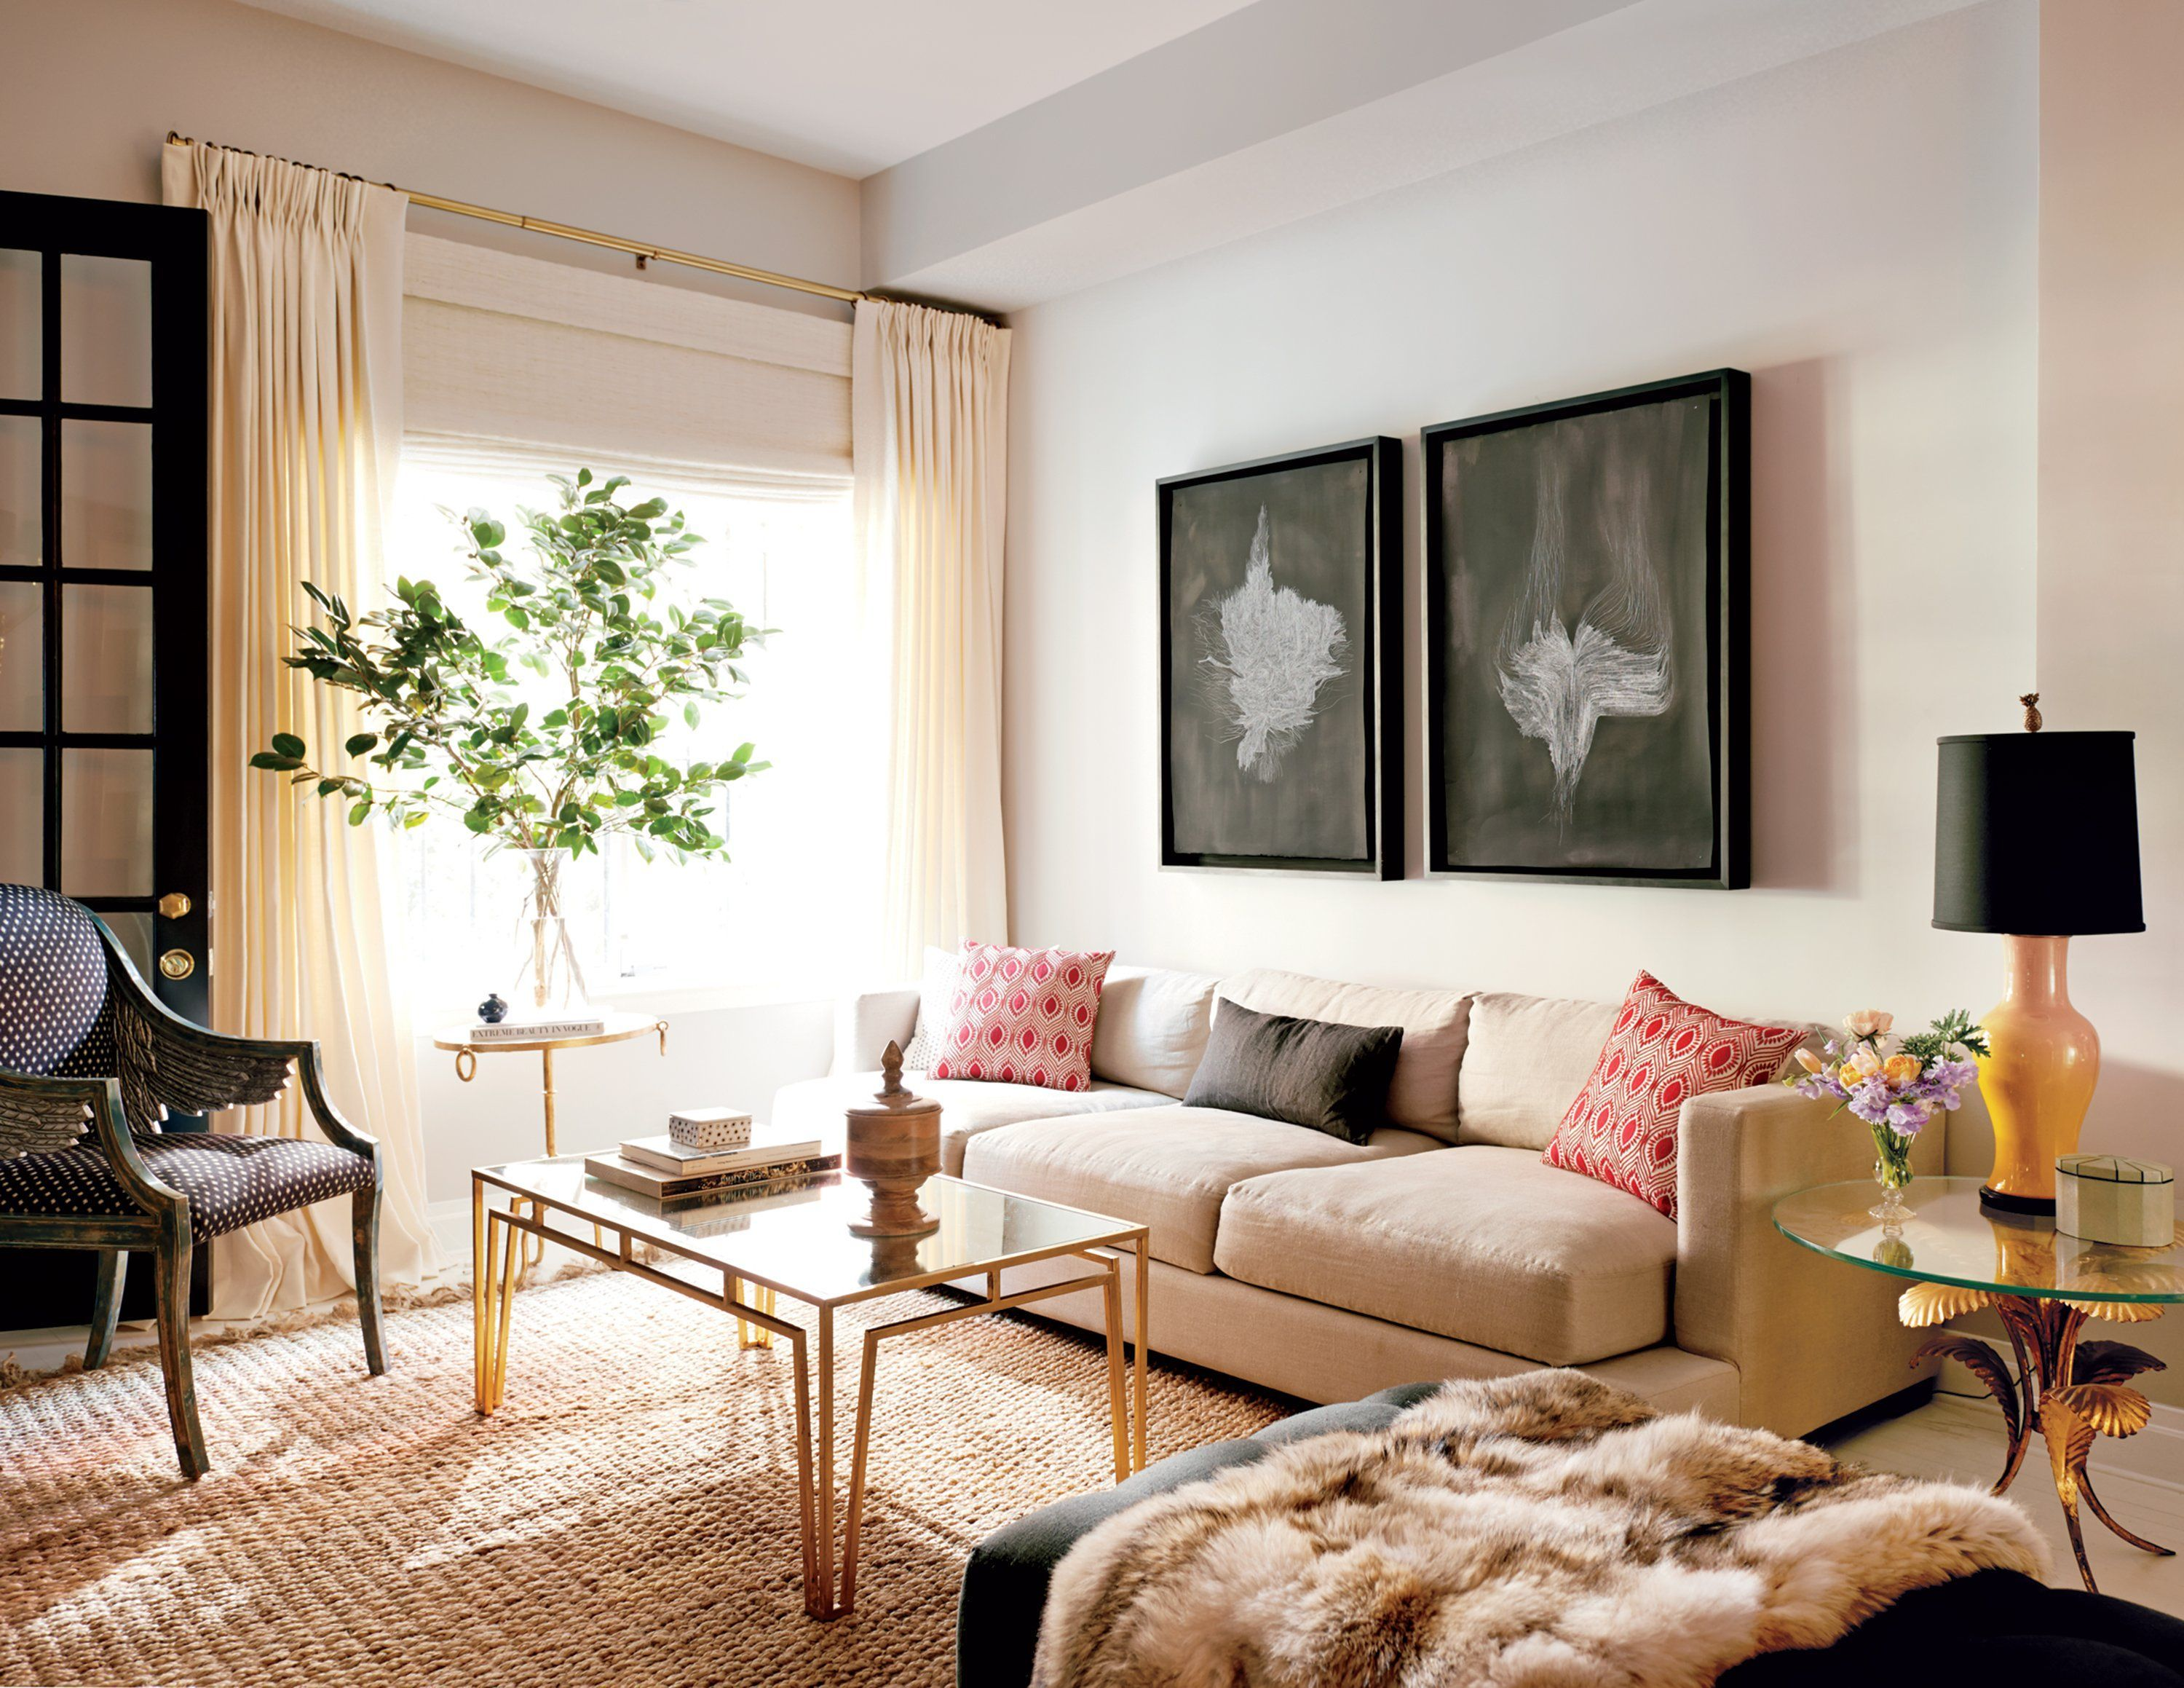 Create Your Dream Home Interior With These Astonishing Top Design